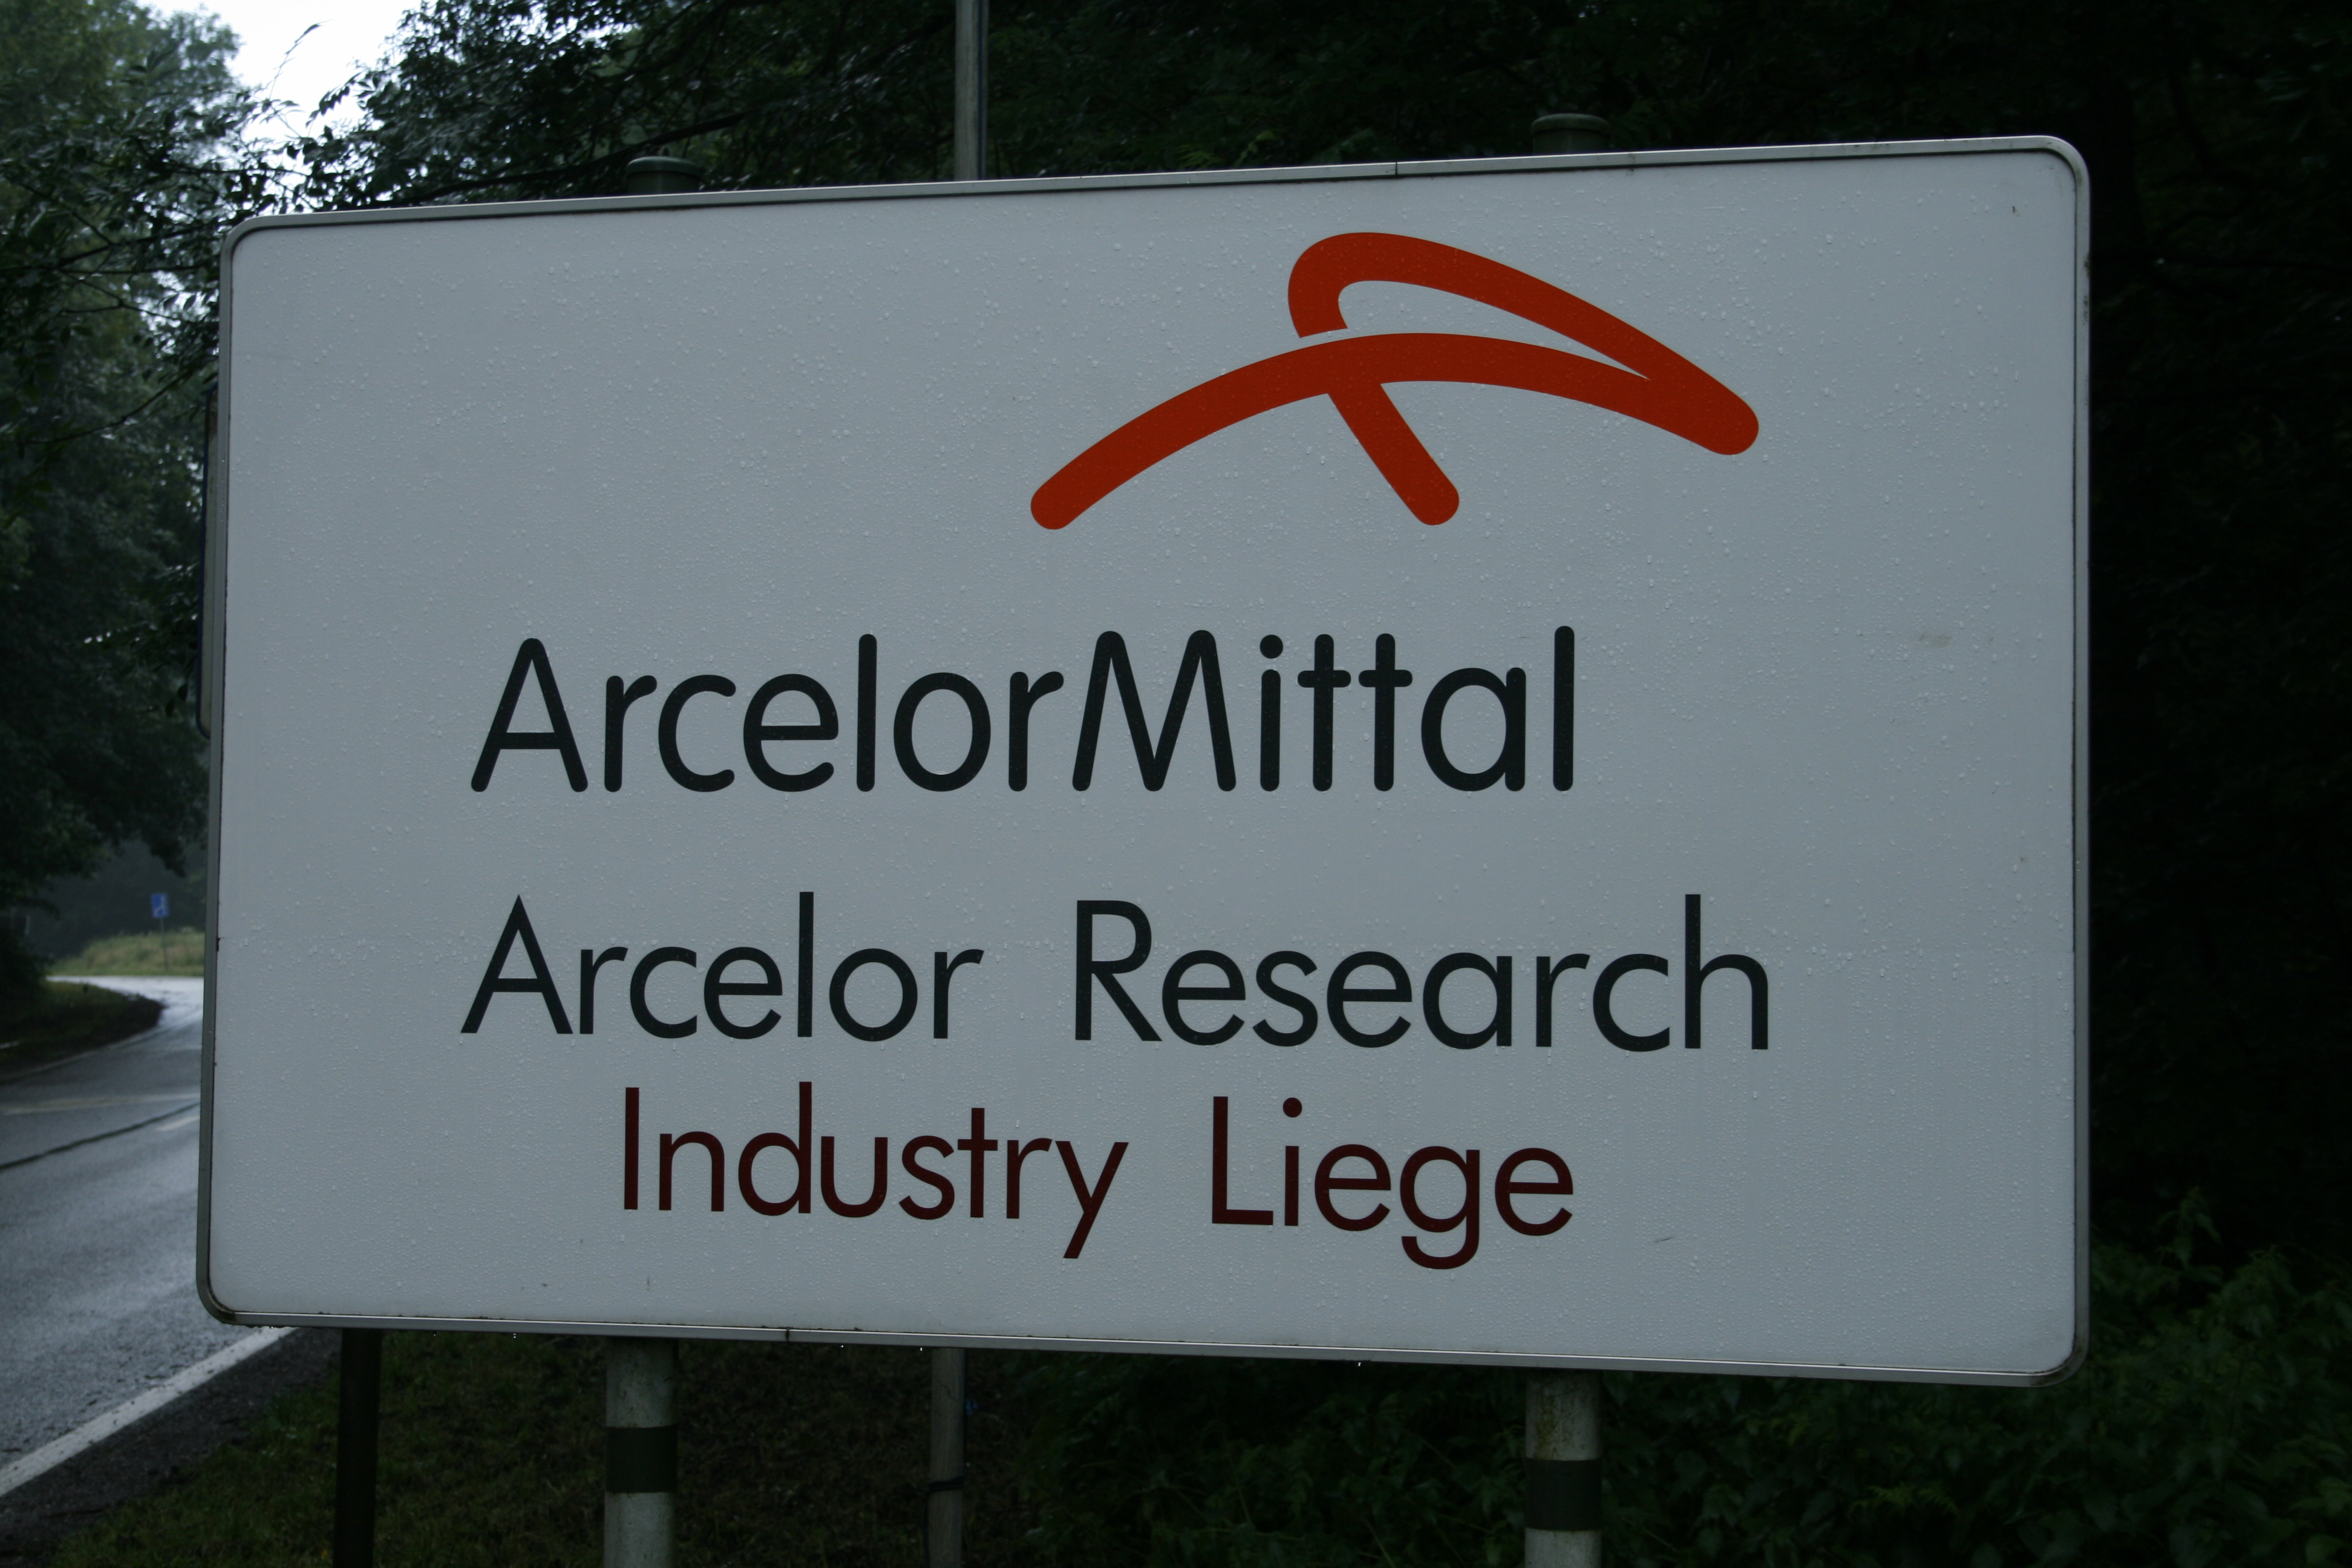 Arcelor_Mittal_Research_Industry_Liege